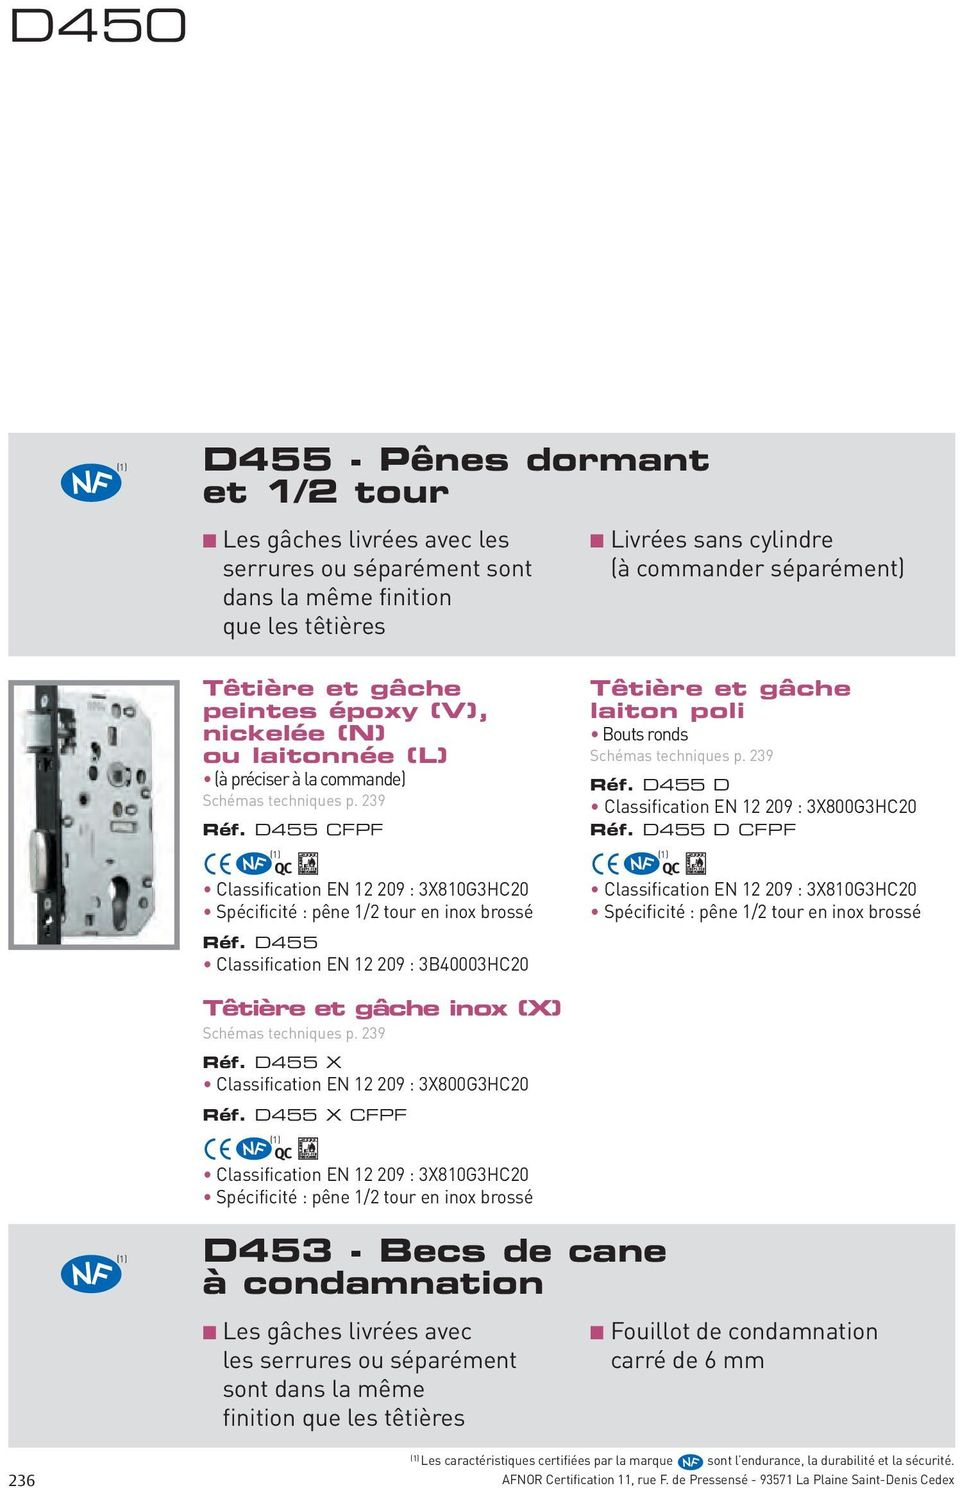 D455 D CFPF Classification EN 12 9 : 3X810G3HC inox (X) Réf. D455 X Classification EN 12 9 : 3X800G3HC Réf.